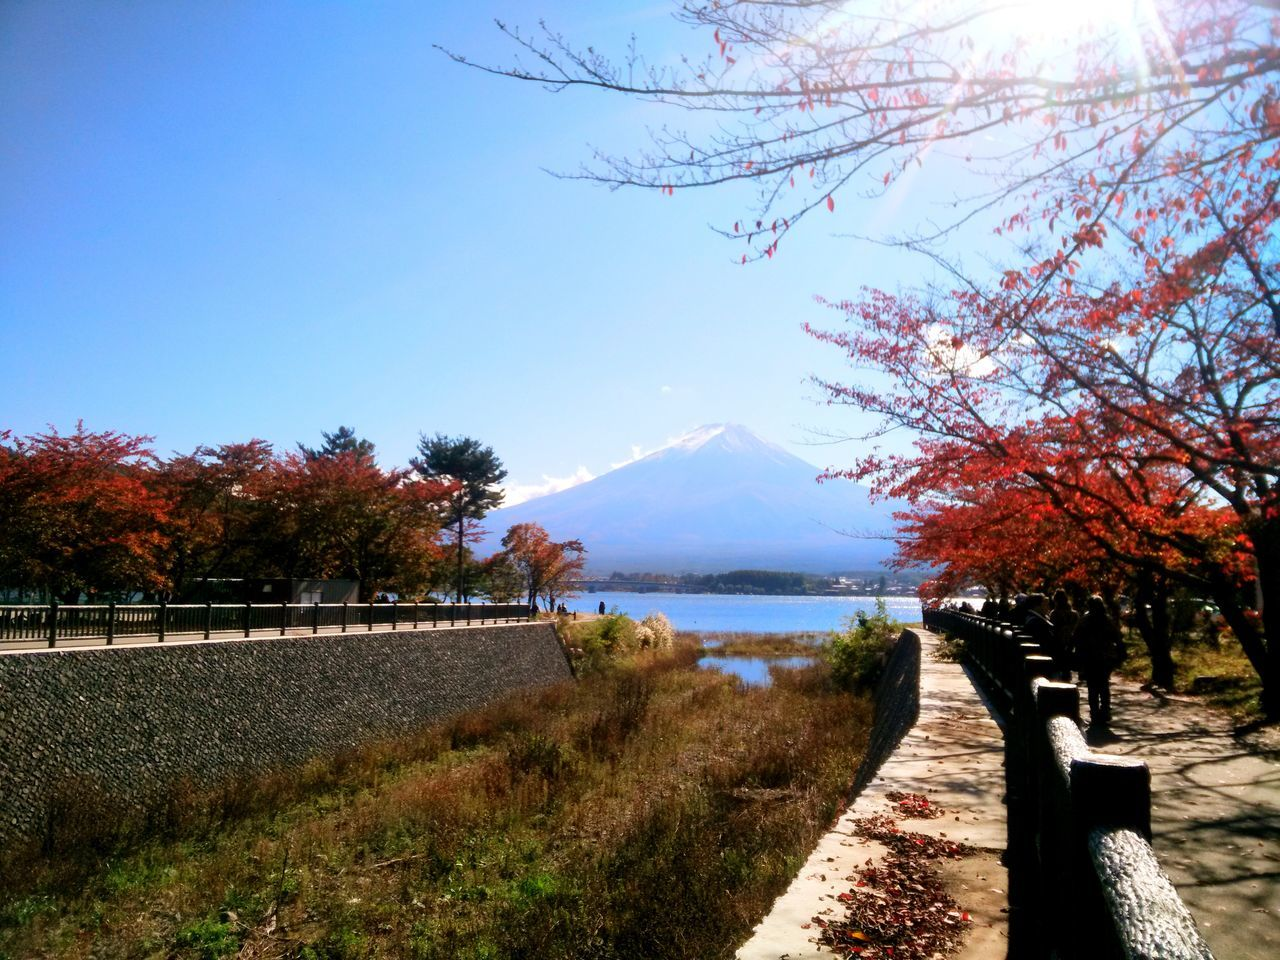 Fuji Mountain Kawafujiko Japan Hanging Out Journey Of Life Capture The Moment Relaxing Taking Photos From My Lens Viewpoint Landscape_Collection Hello World Enjoying Life Nature Photography Beauty In Nature Landscape Vacations Nature